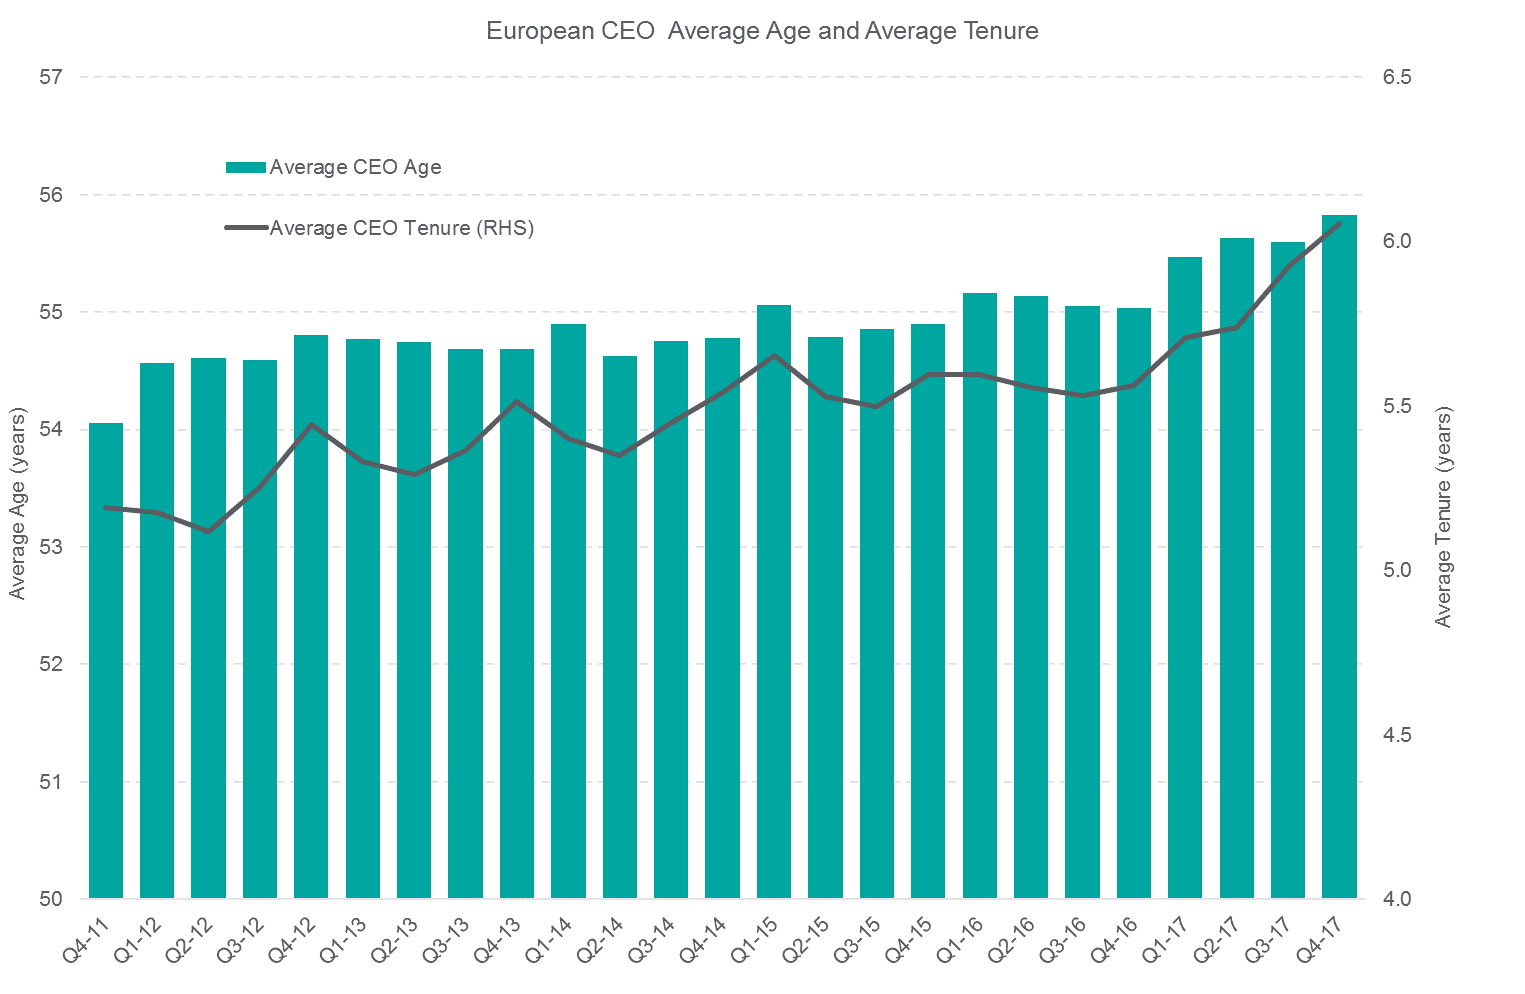 European CEO Average and Average Tenure